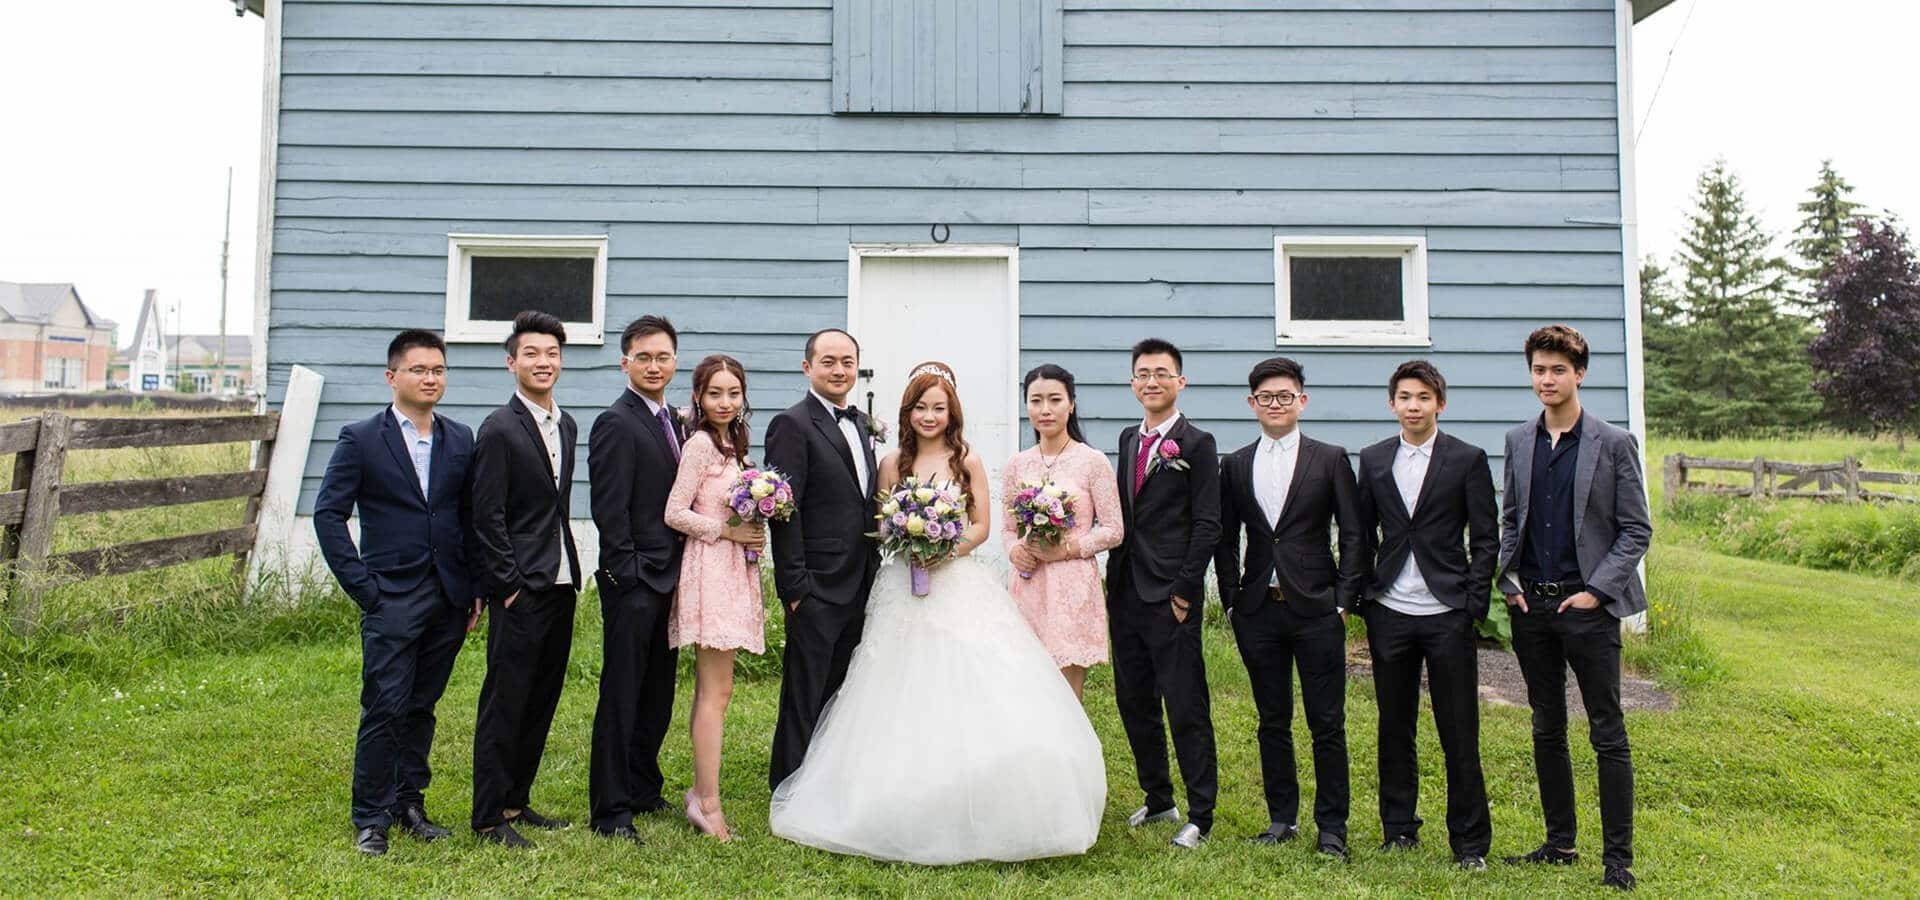 Hero image for Miao and Kenny's Provence Lavender Farm Themed Wedding at Angus Glen Golf Club